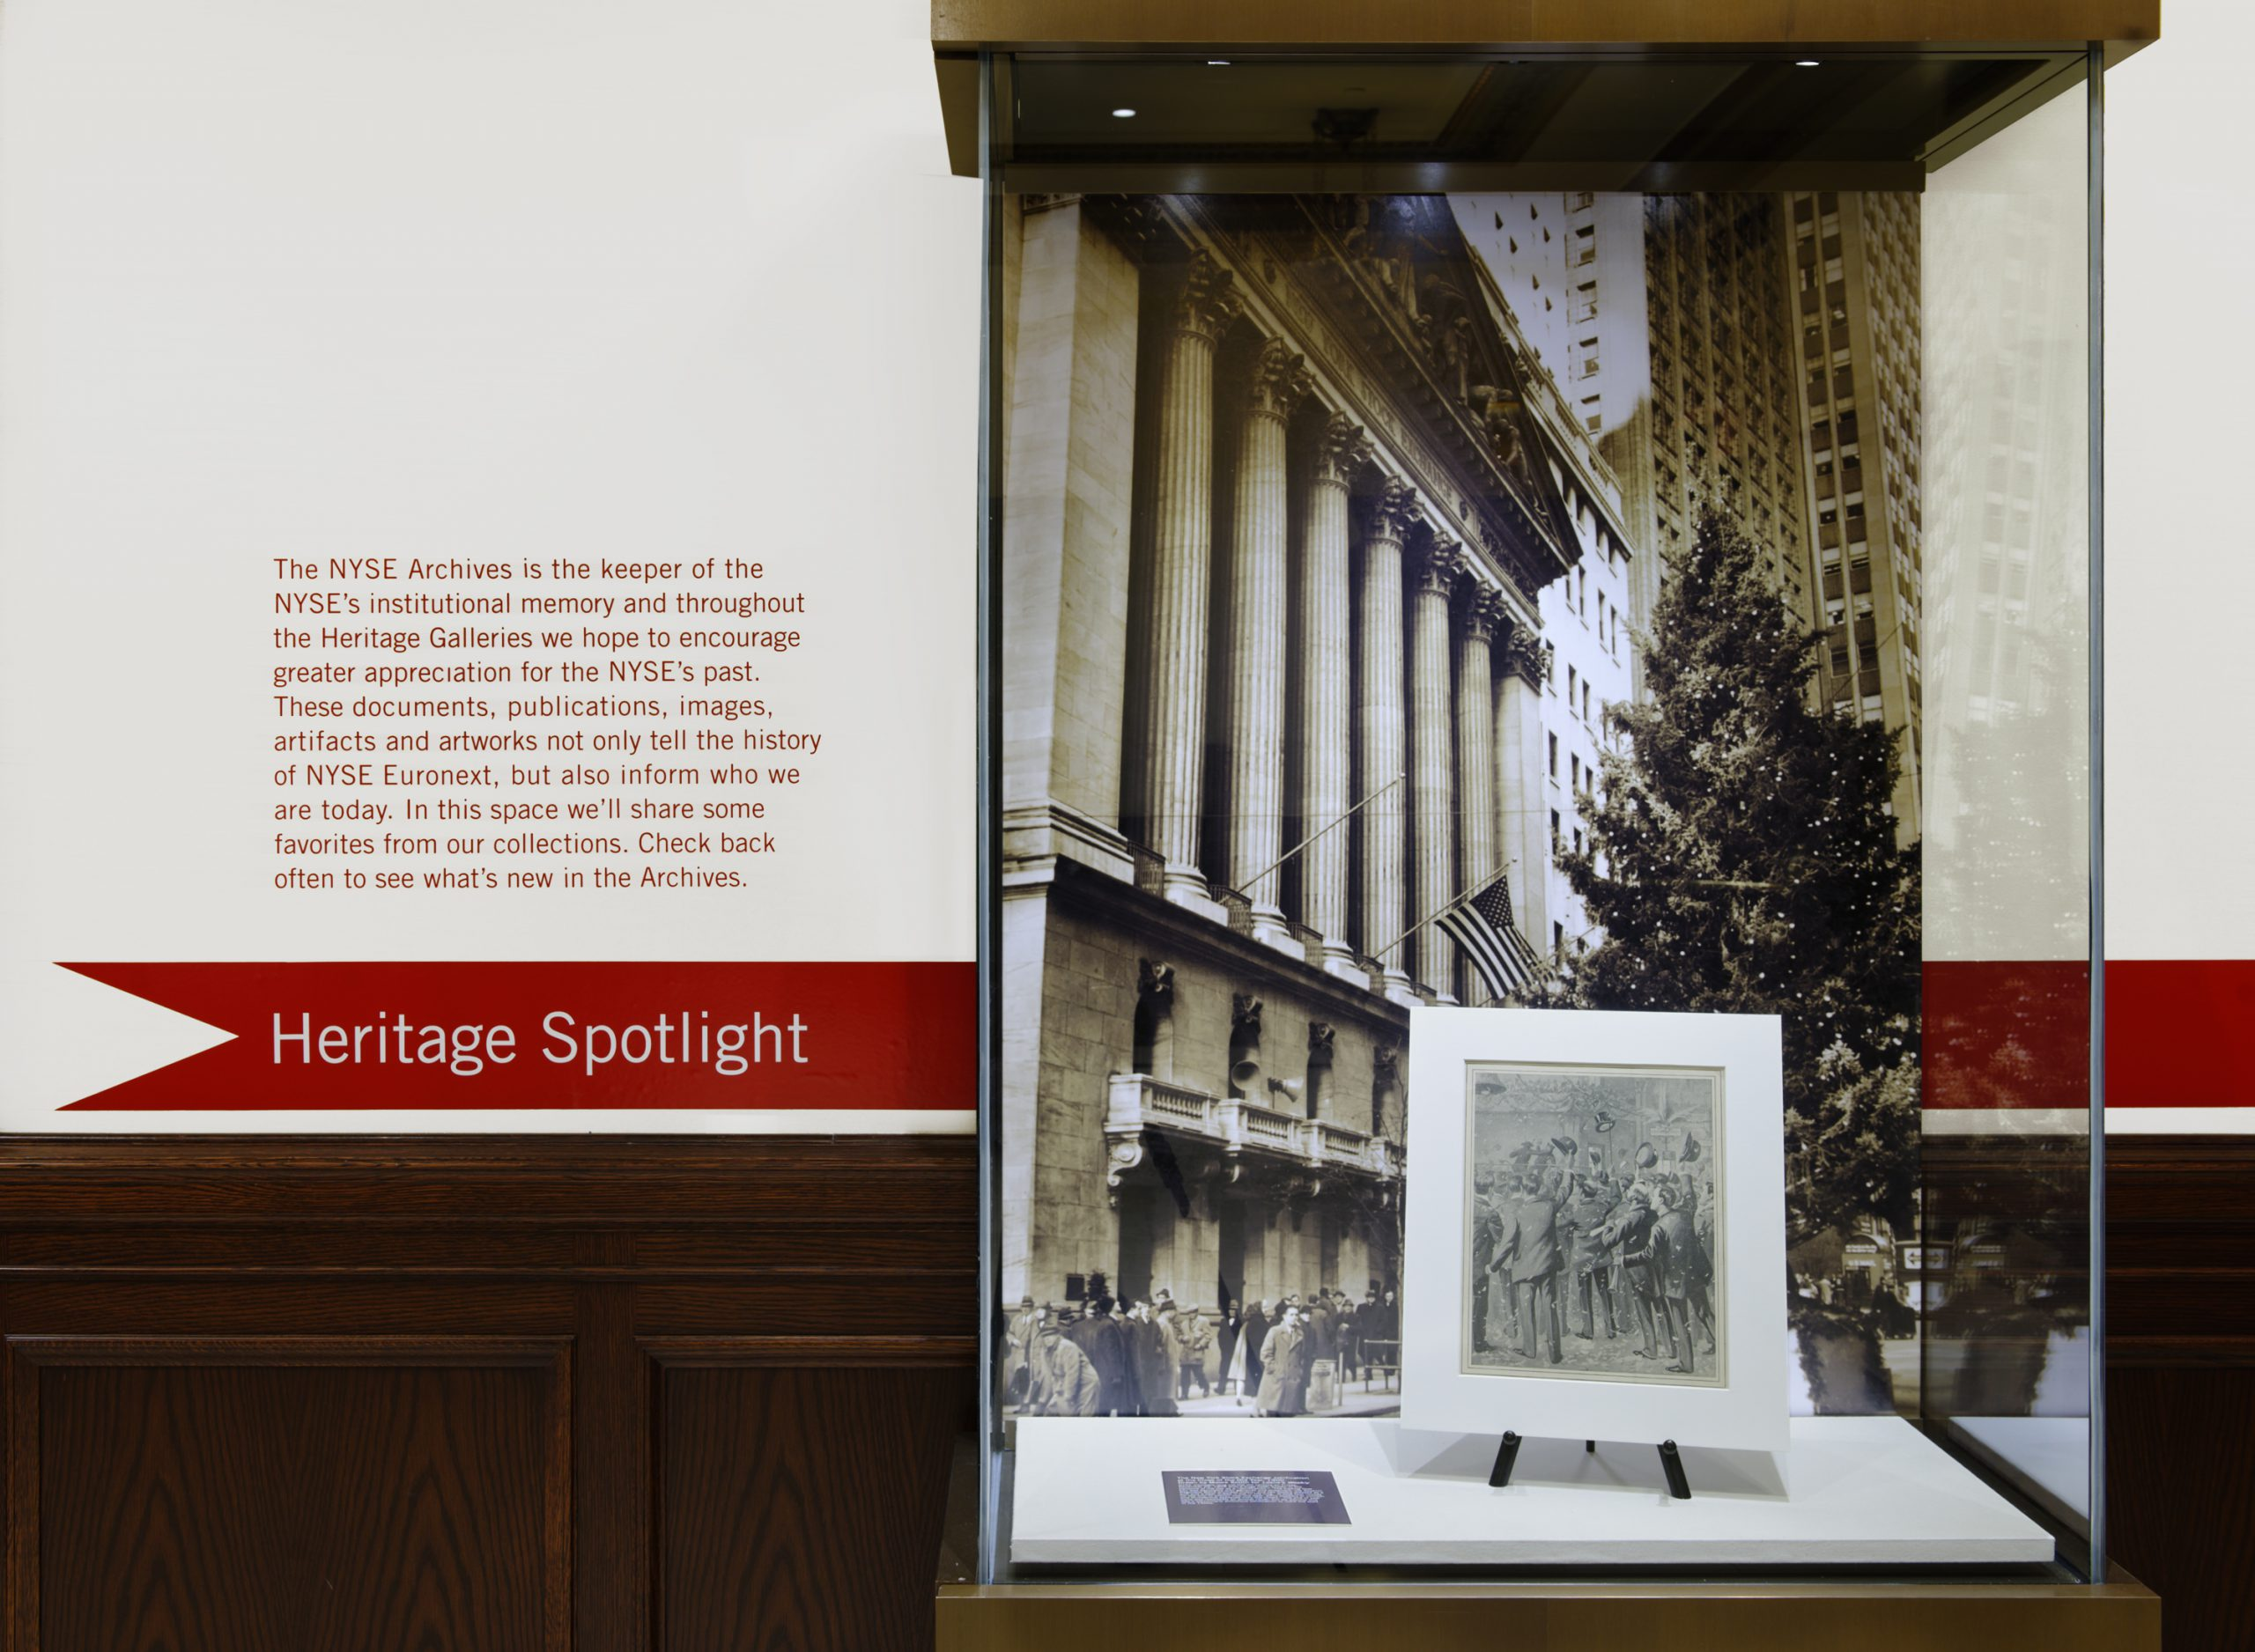 Project image 5 for NYSE Heritage Galleries, New York Stock Exchange